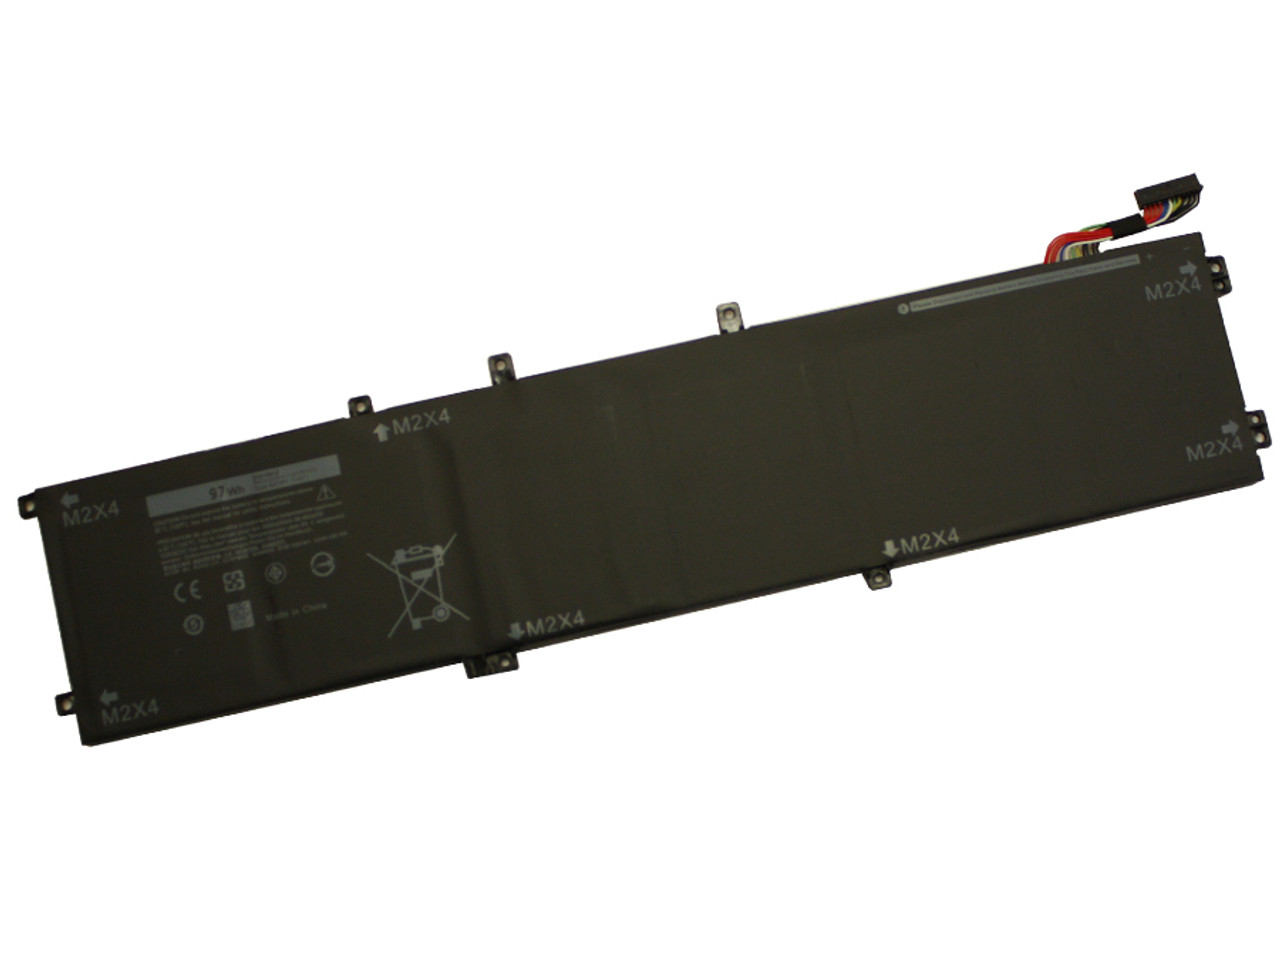 Replacement Battery for Dell Precision / Compatible with 5510 5520, XPS 15 9560 7590 Type 6GTPY GPM03 97WH Laptop Battery